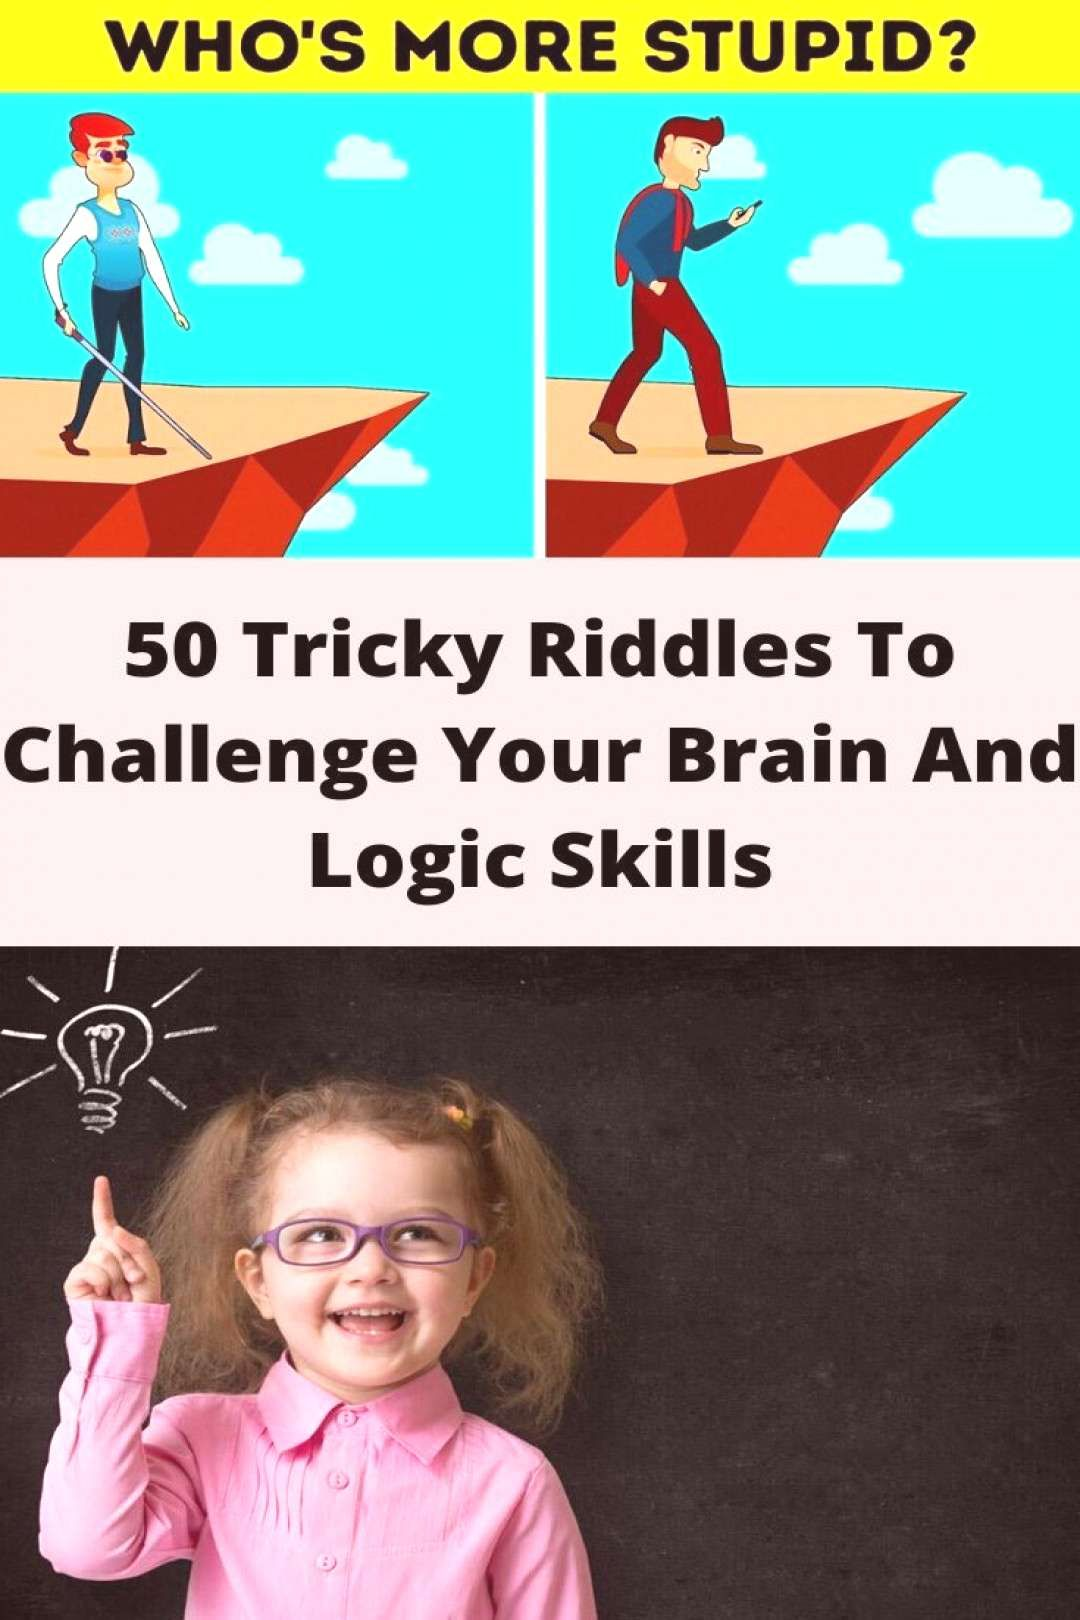 50 Tricky Riddles To Challenge Your Brain And Logic SkillsYou can find Riddles and more on our website50 Tricky Riddles To Challenge Your Brain And Logic Skills